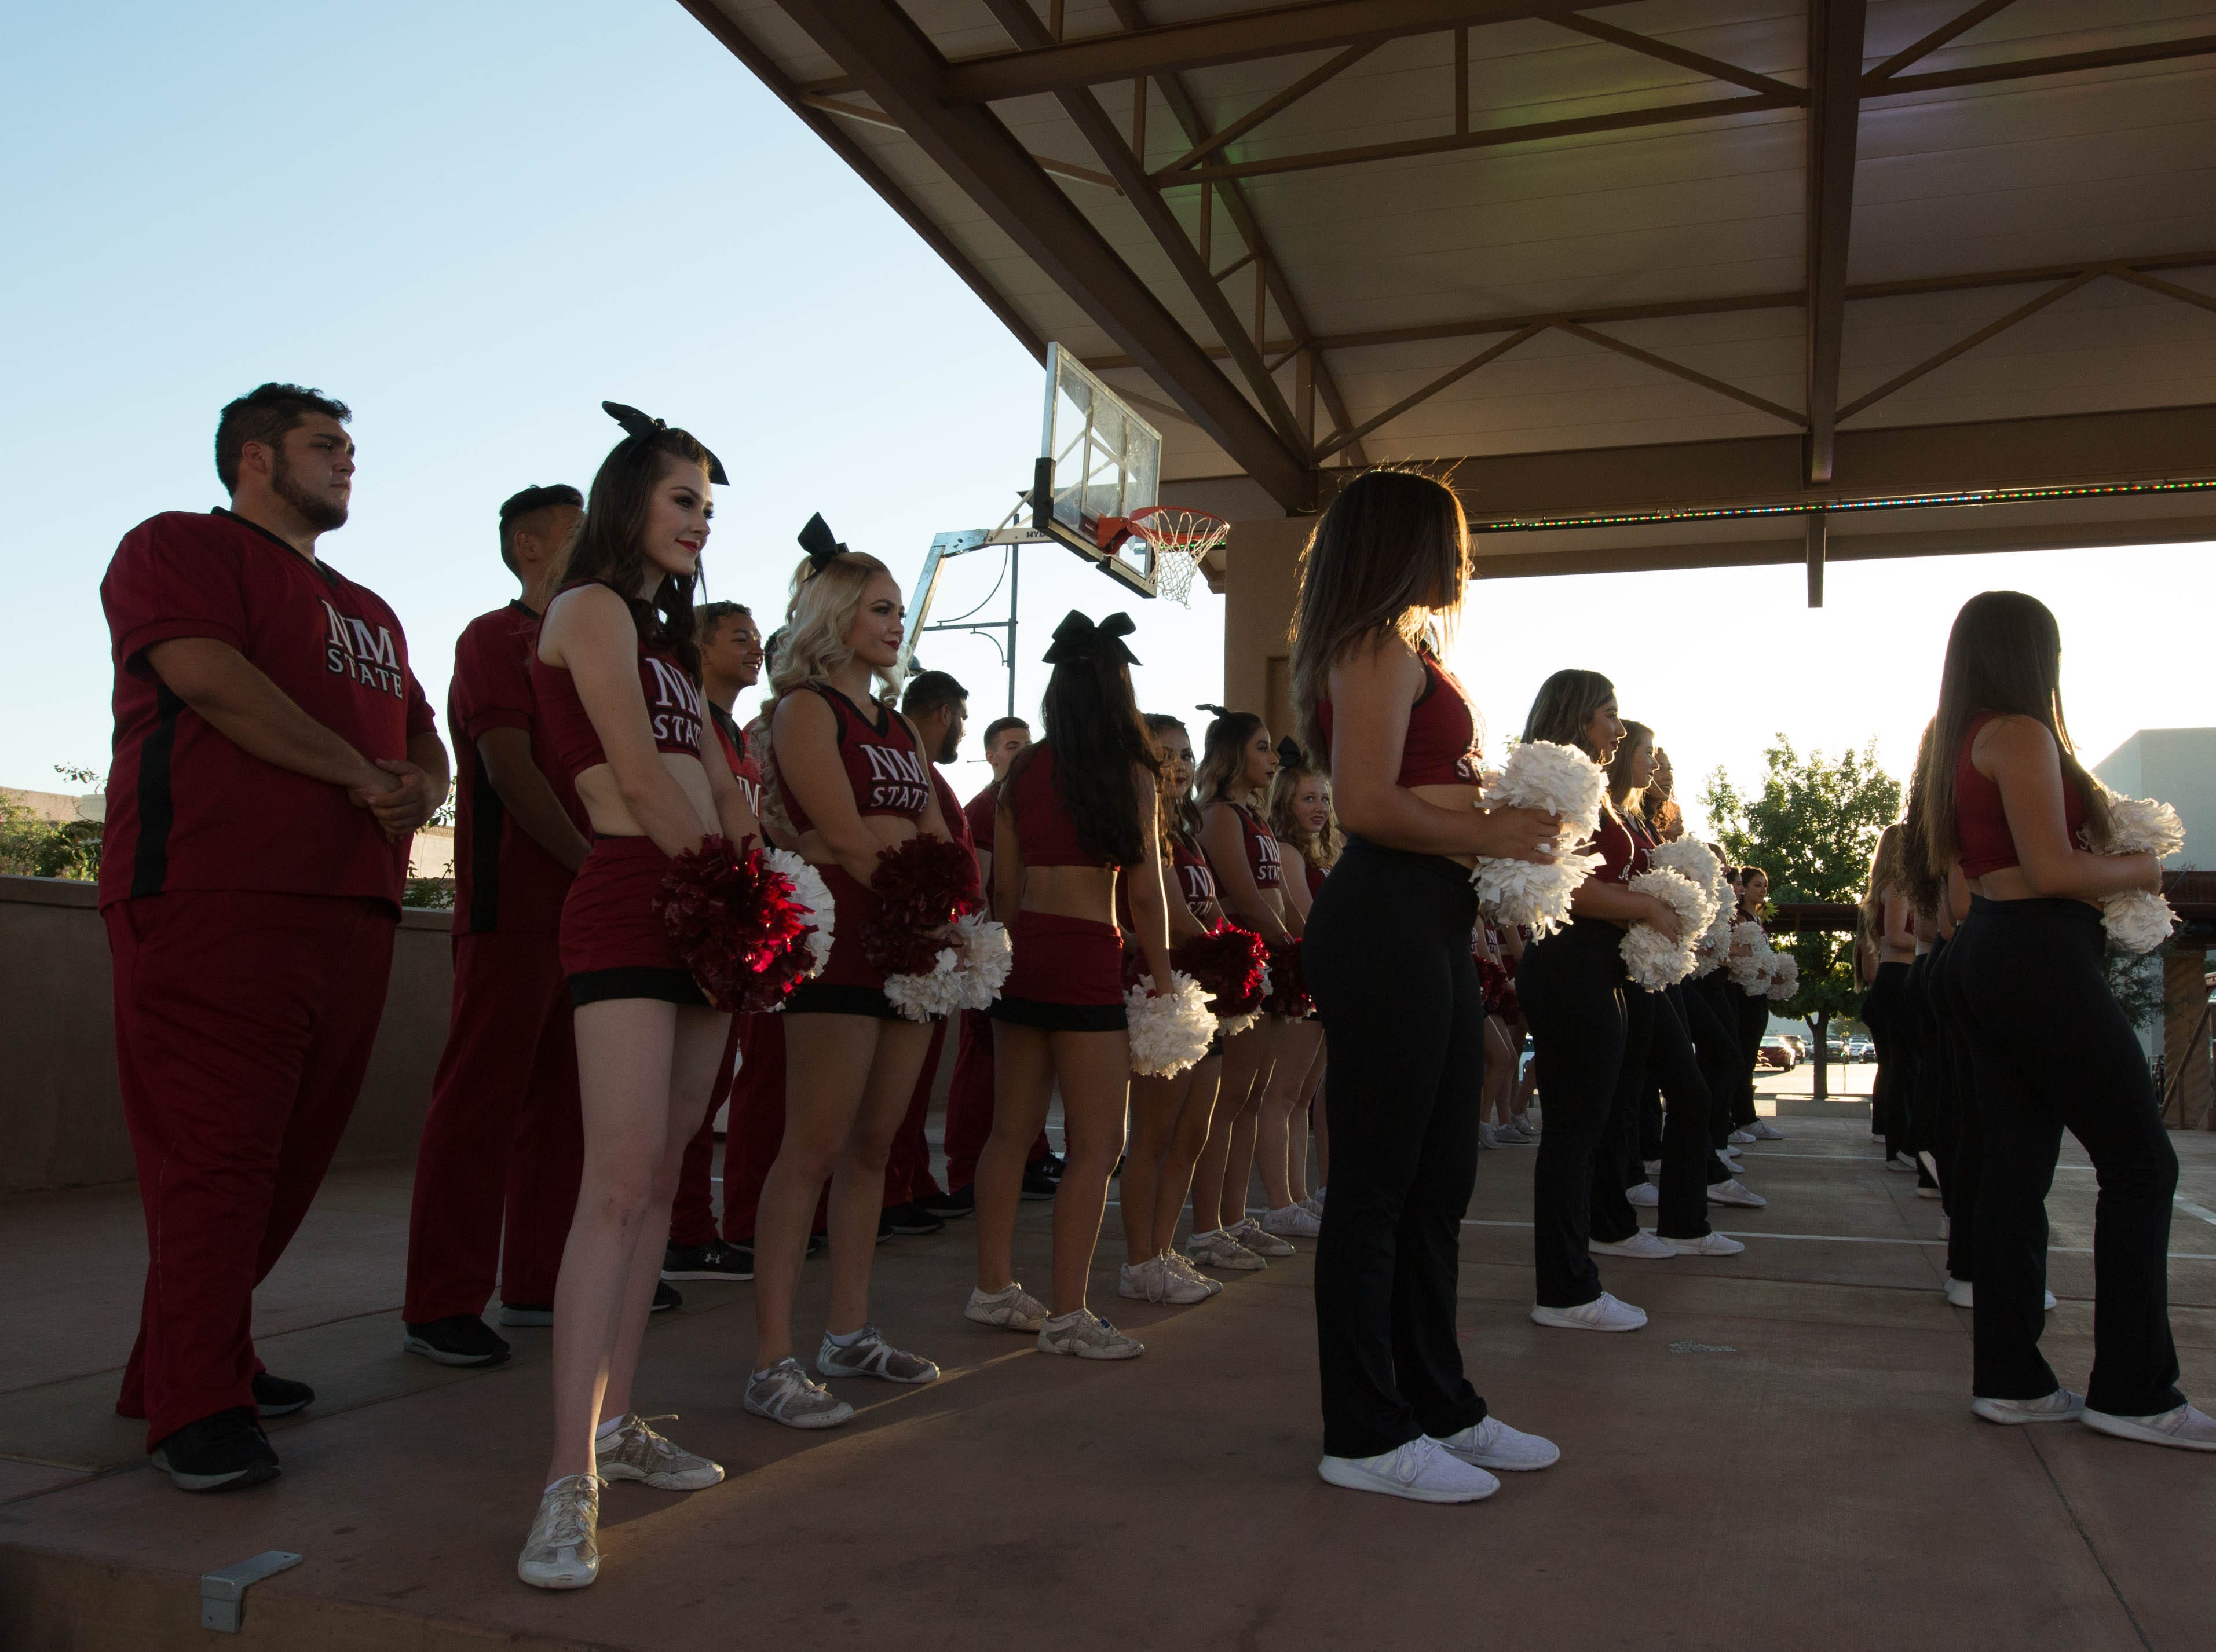 New Mexico State University Cheerleaders and Sun Dancers on stage while Las Cruces Mayor Ken Miyagishima speaks to the Aggie fans gathered  at the Plaza de Las Cruces during  the Downtown Aggie Rally, Friday September 28, 2018.